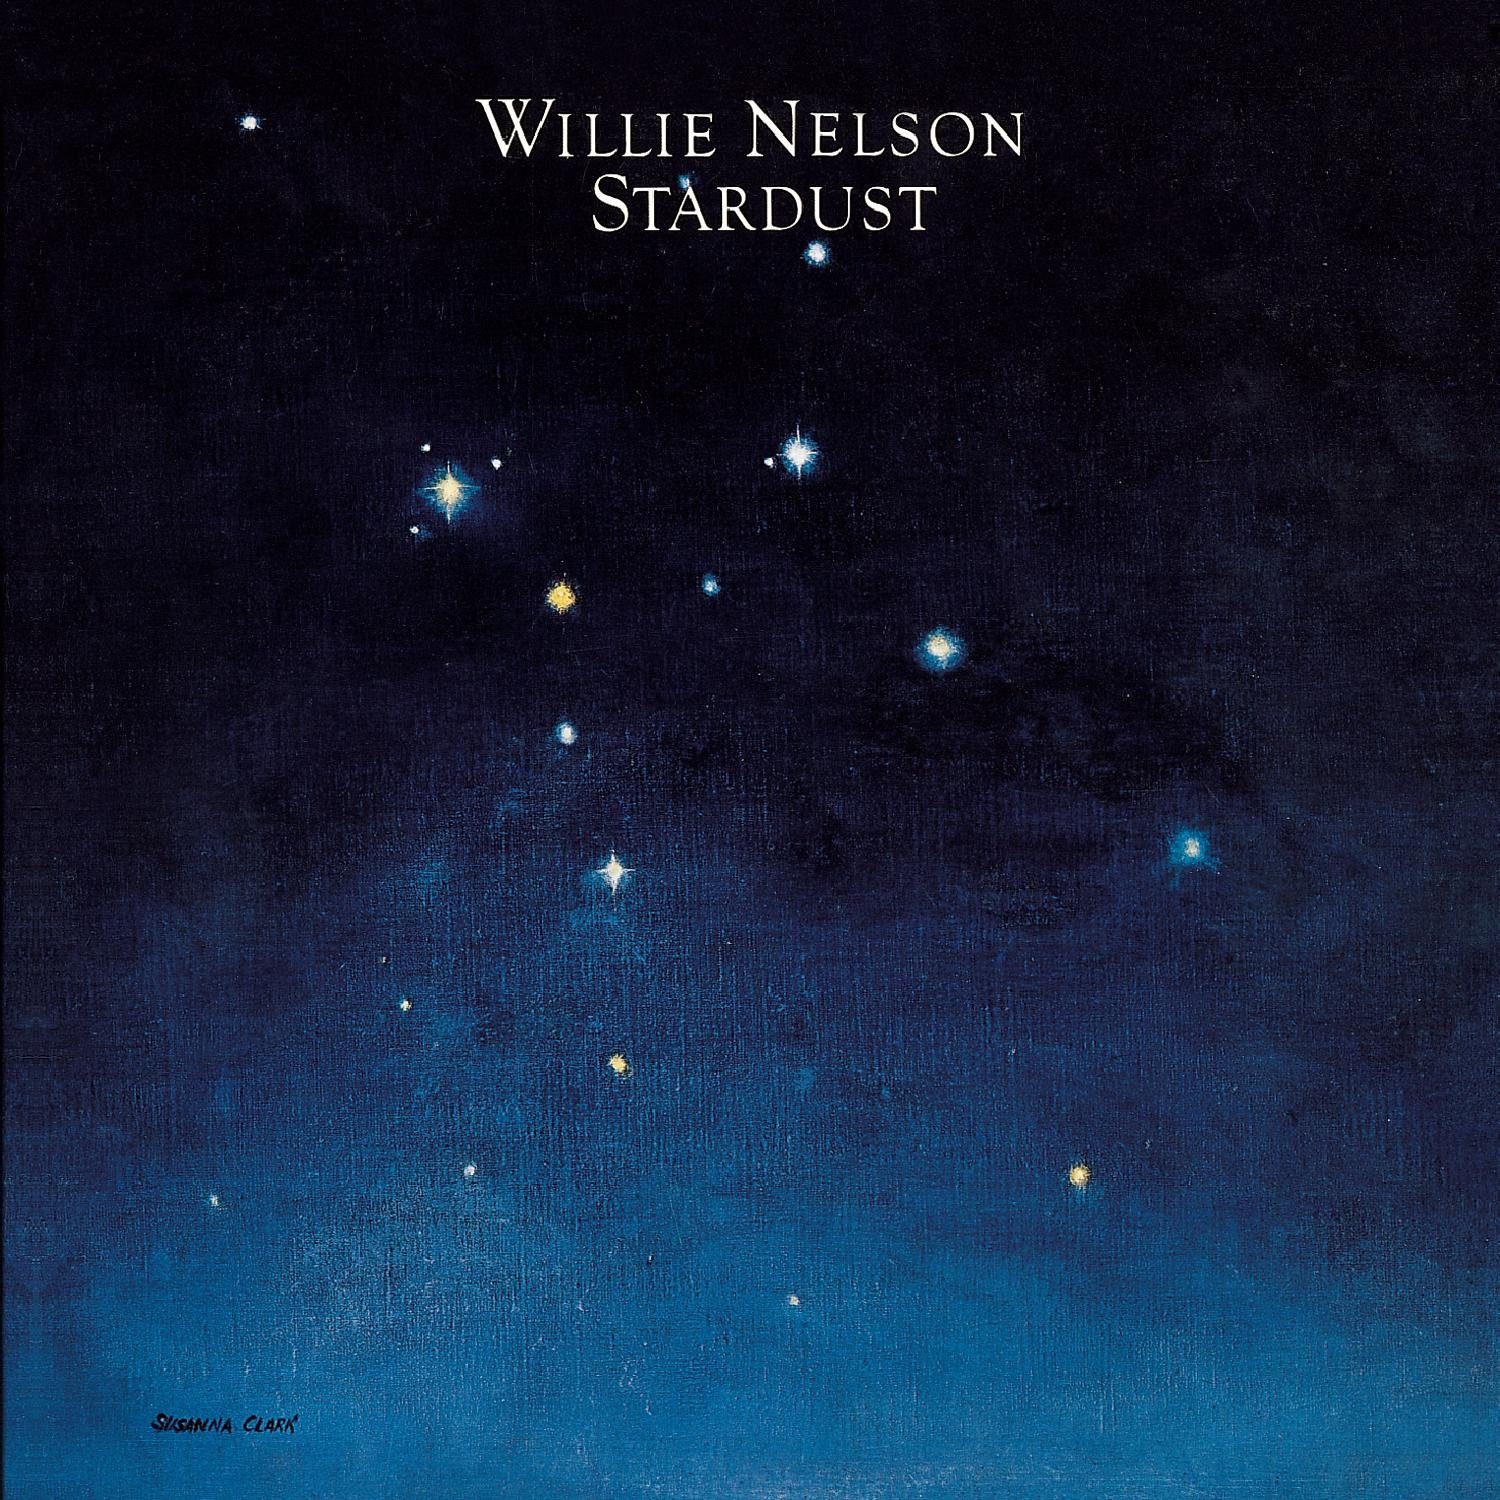 Willie Nelson, Stardust: 30th Anniversary Legacy Edition